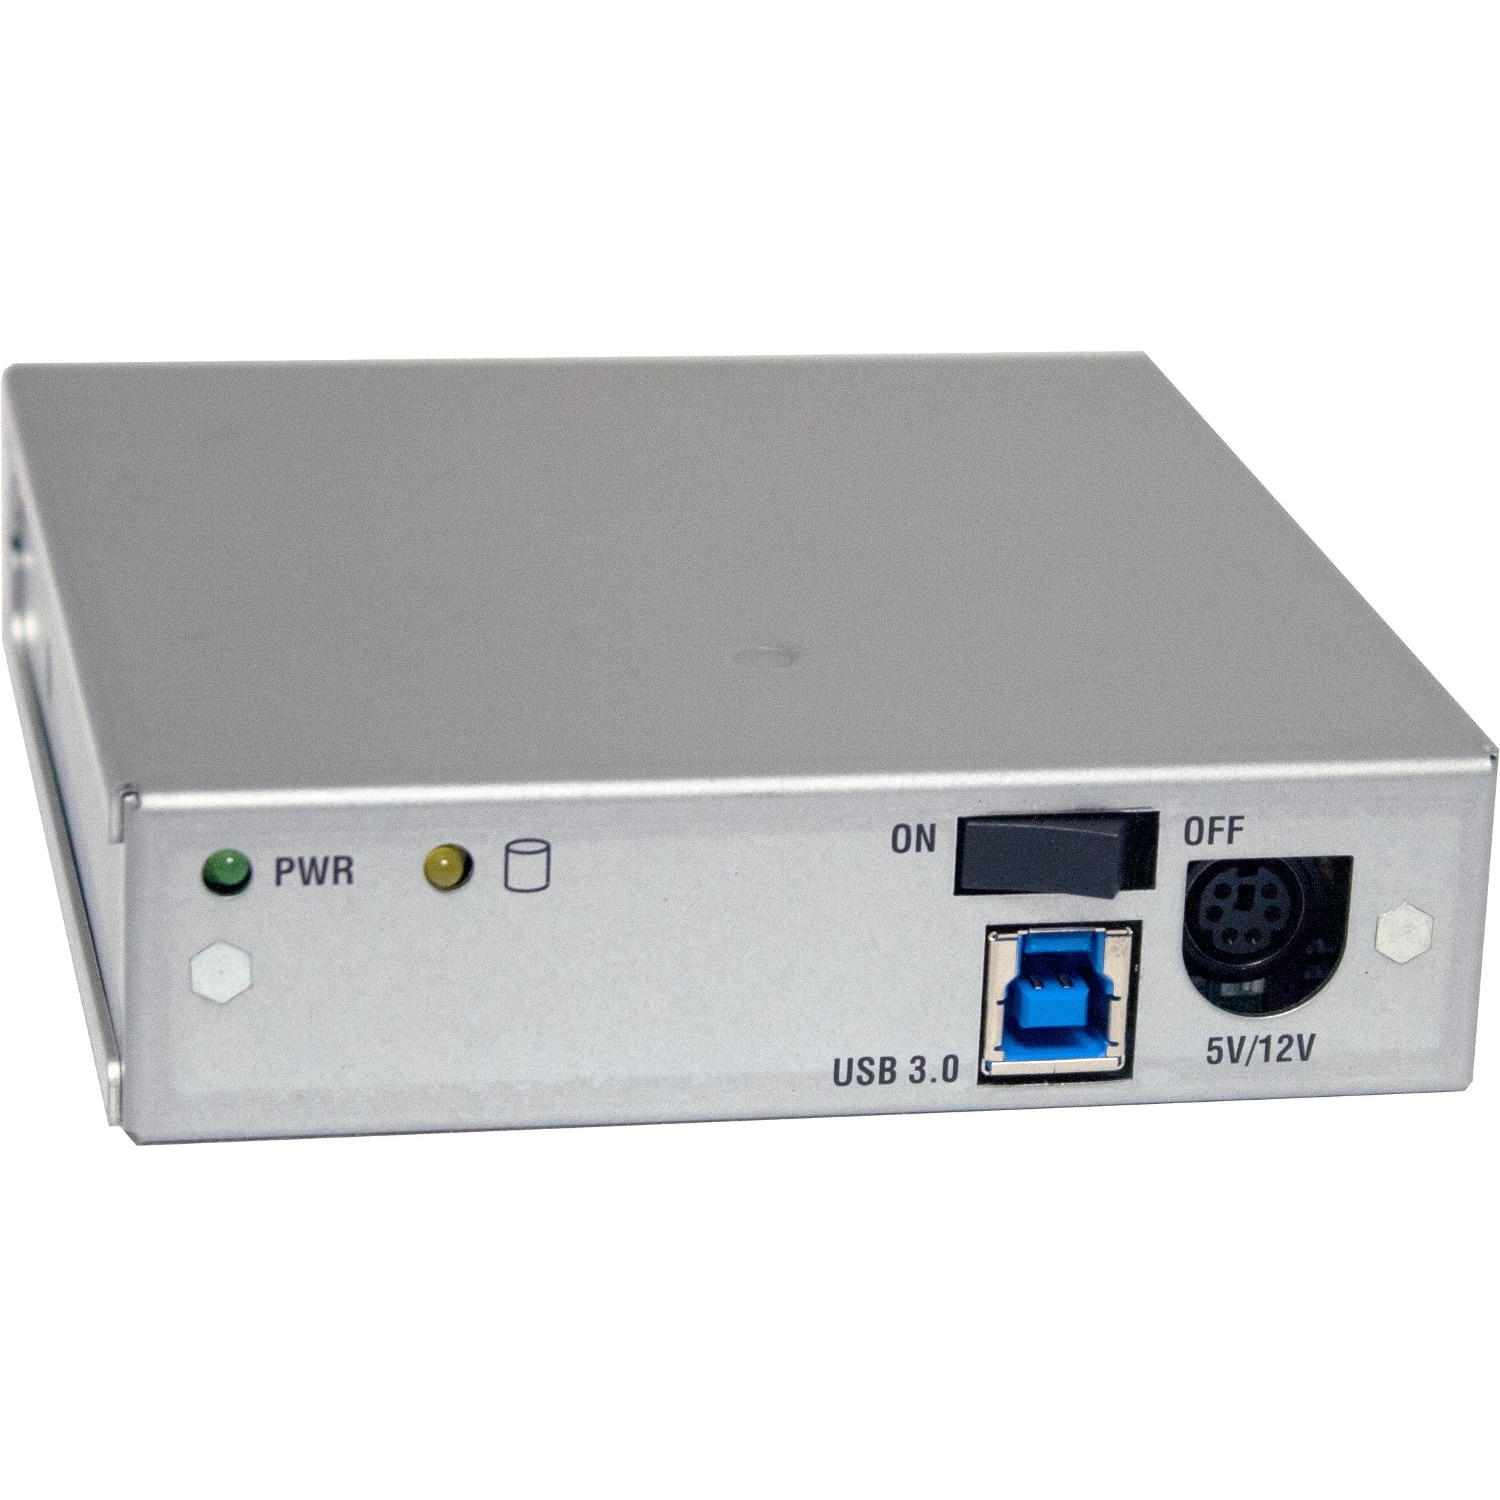 MoveDock Drive Bay Adapter Internal/External - Silver - 4 TB Installed HDD Capacity - 1 x Total Bay - 1 x 2.5 inch /3.5 inch Bay - Serial ATA/600 - USB 3.0 - Steel